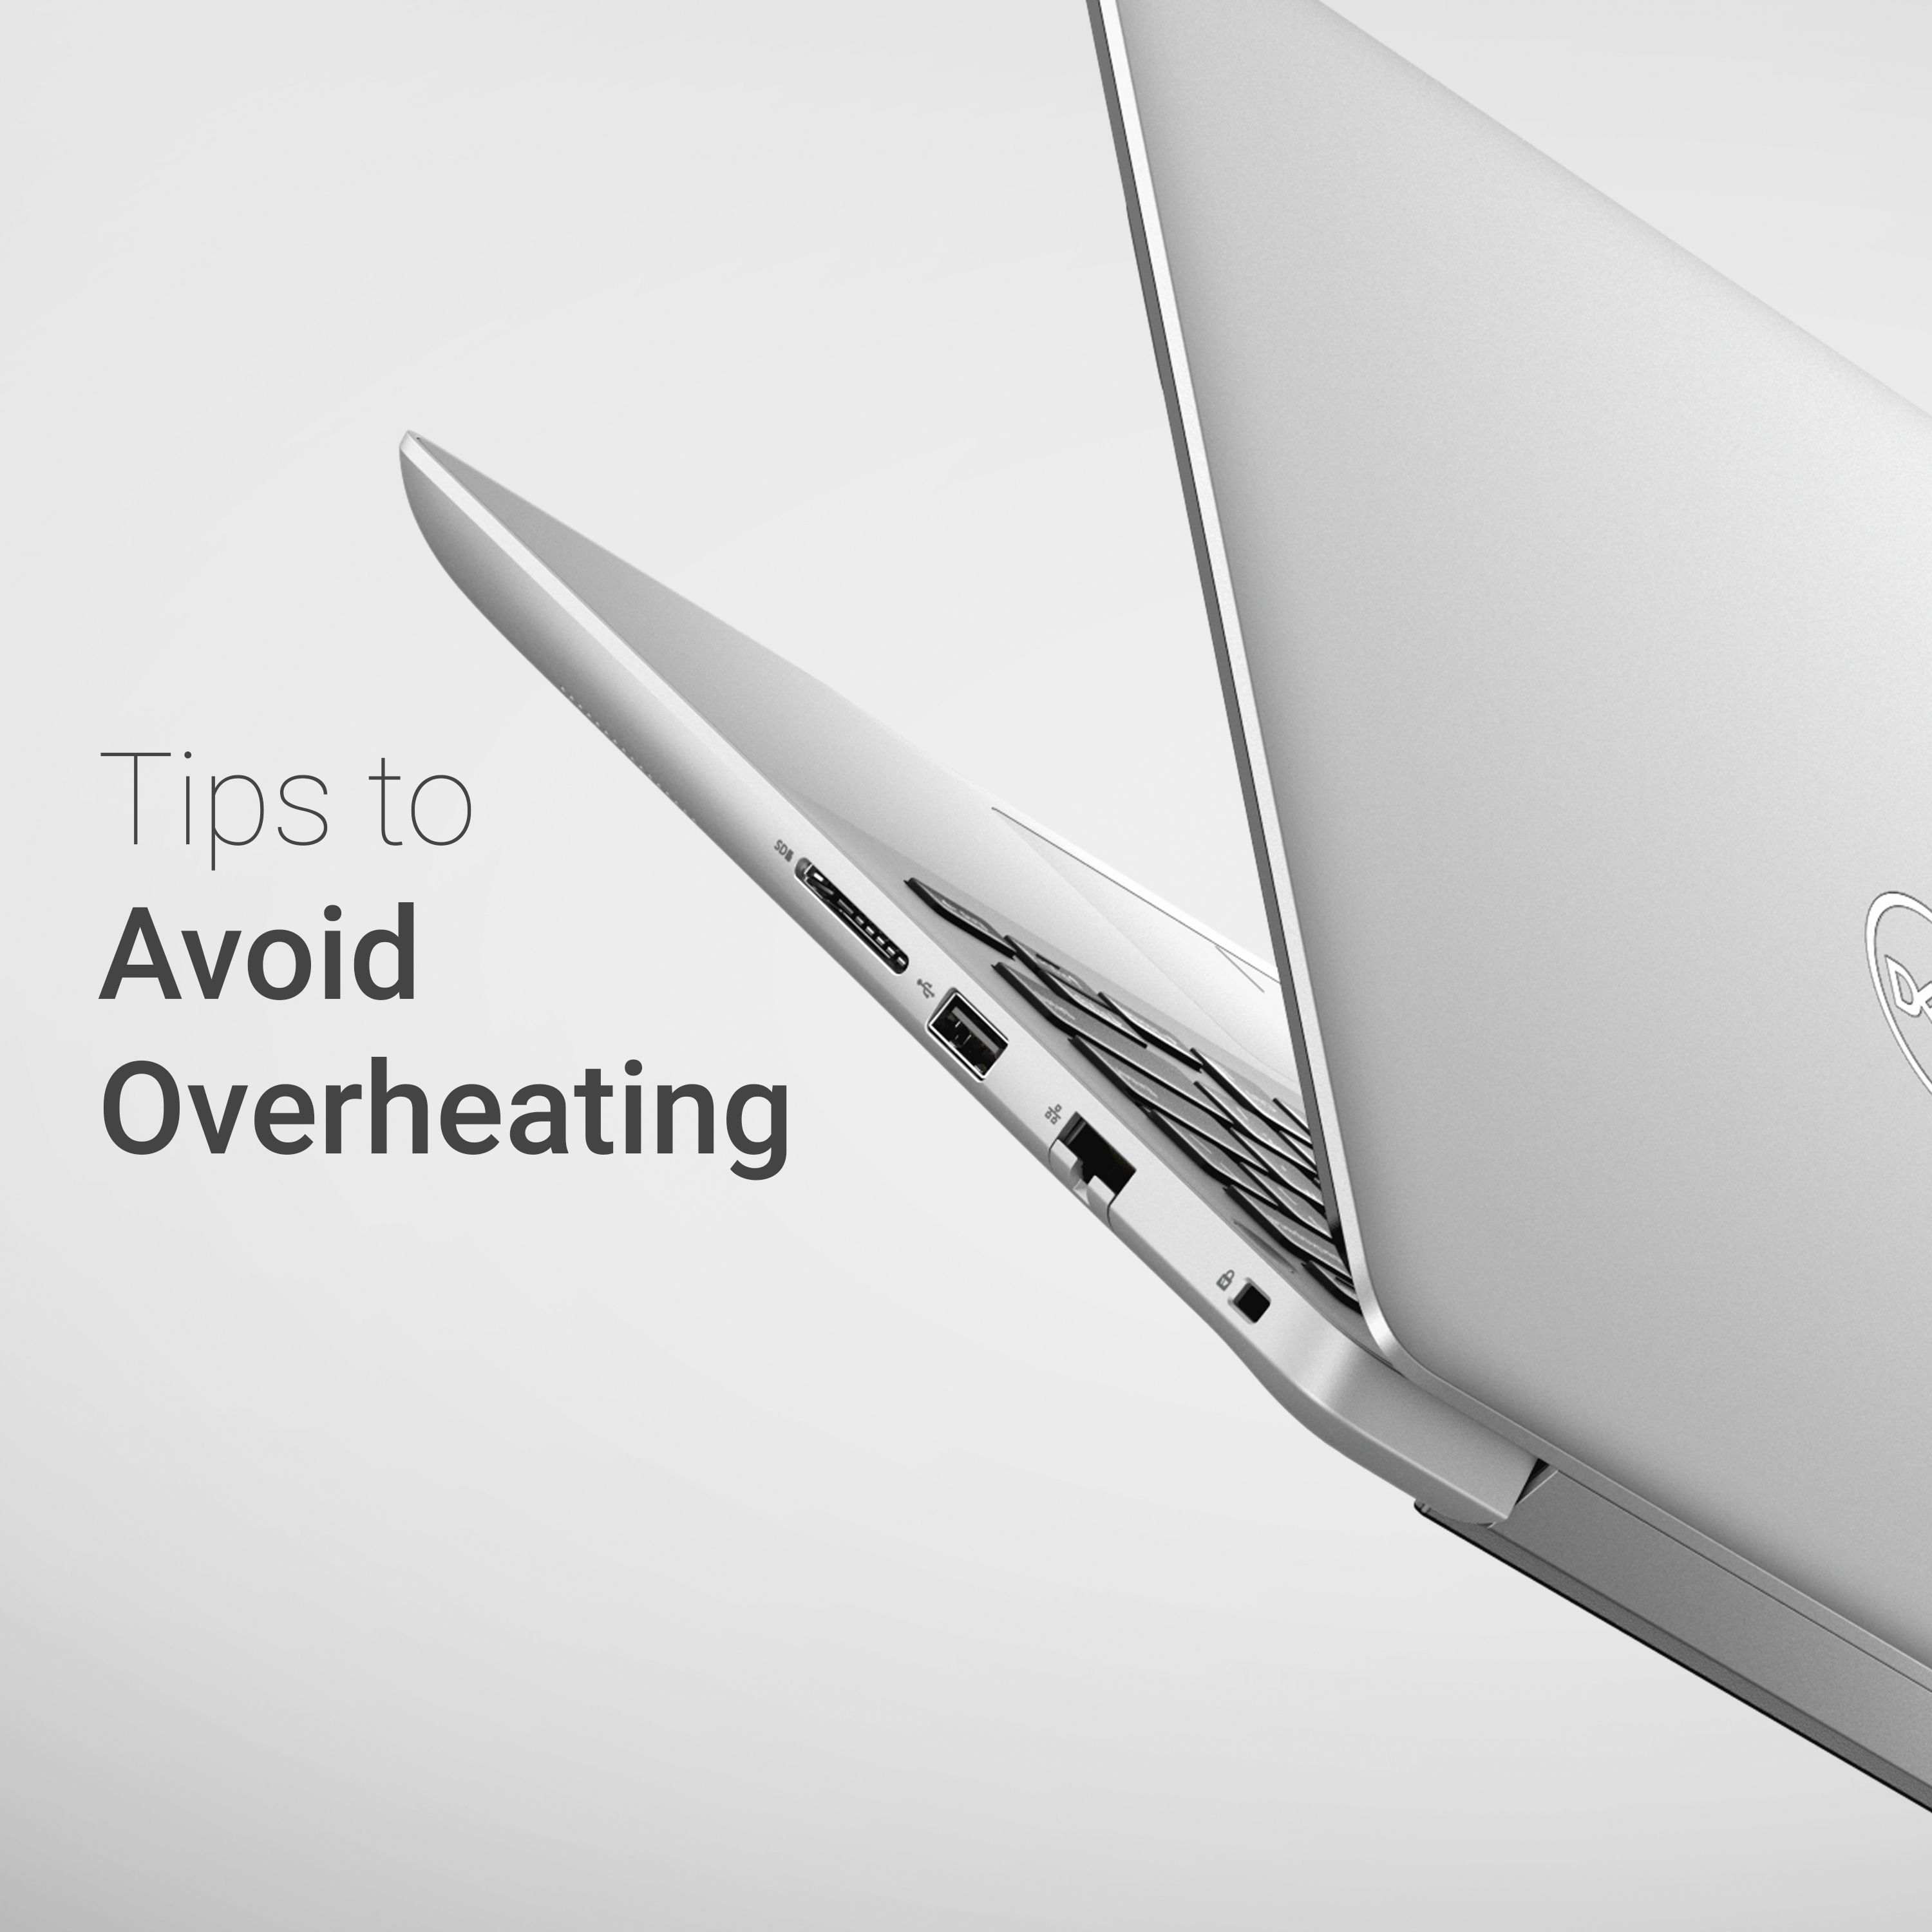 Overheating Your Dell Laptop Can Cause Hardware Failures Or